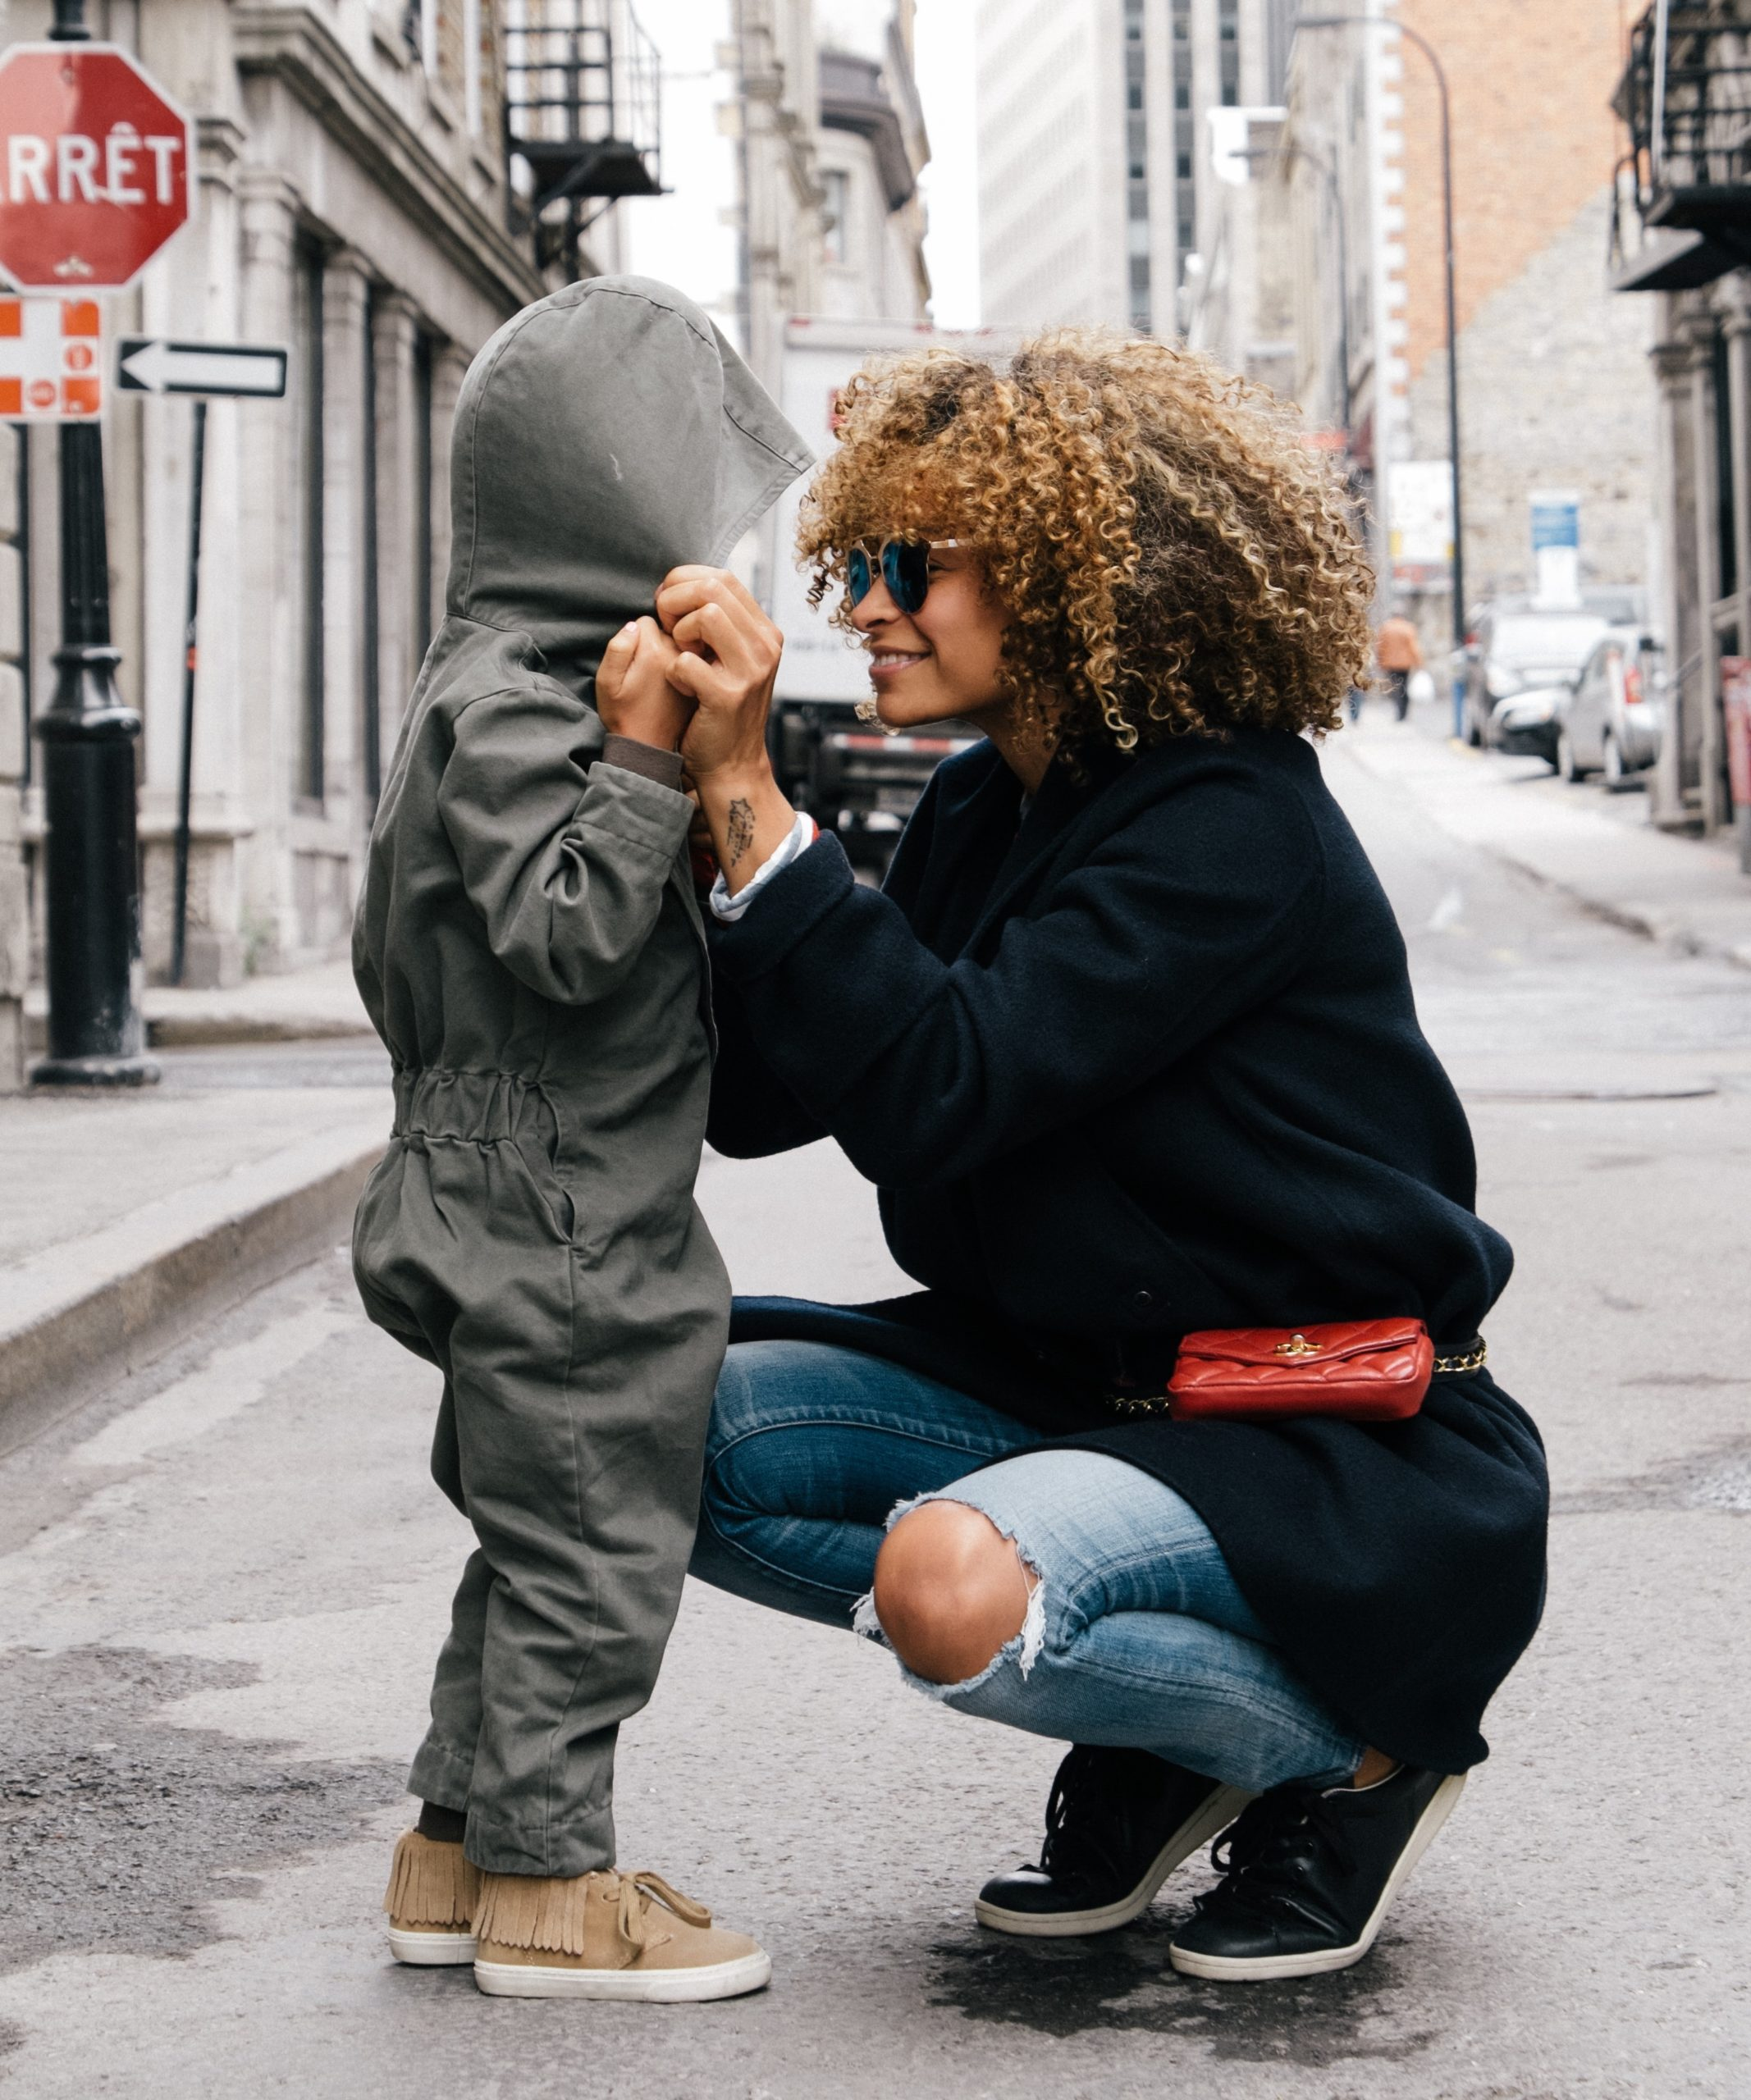 A young woman of color with natural hair and sunglasses grins as she squats next to her child, looking into his eyes warmly.